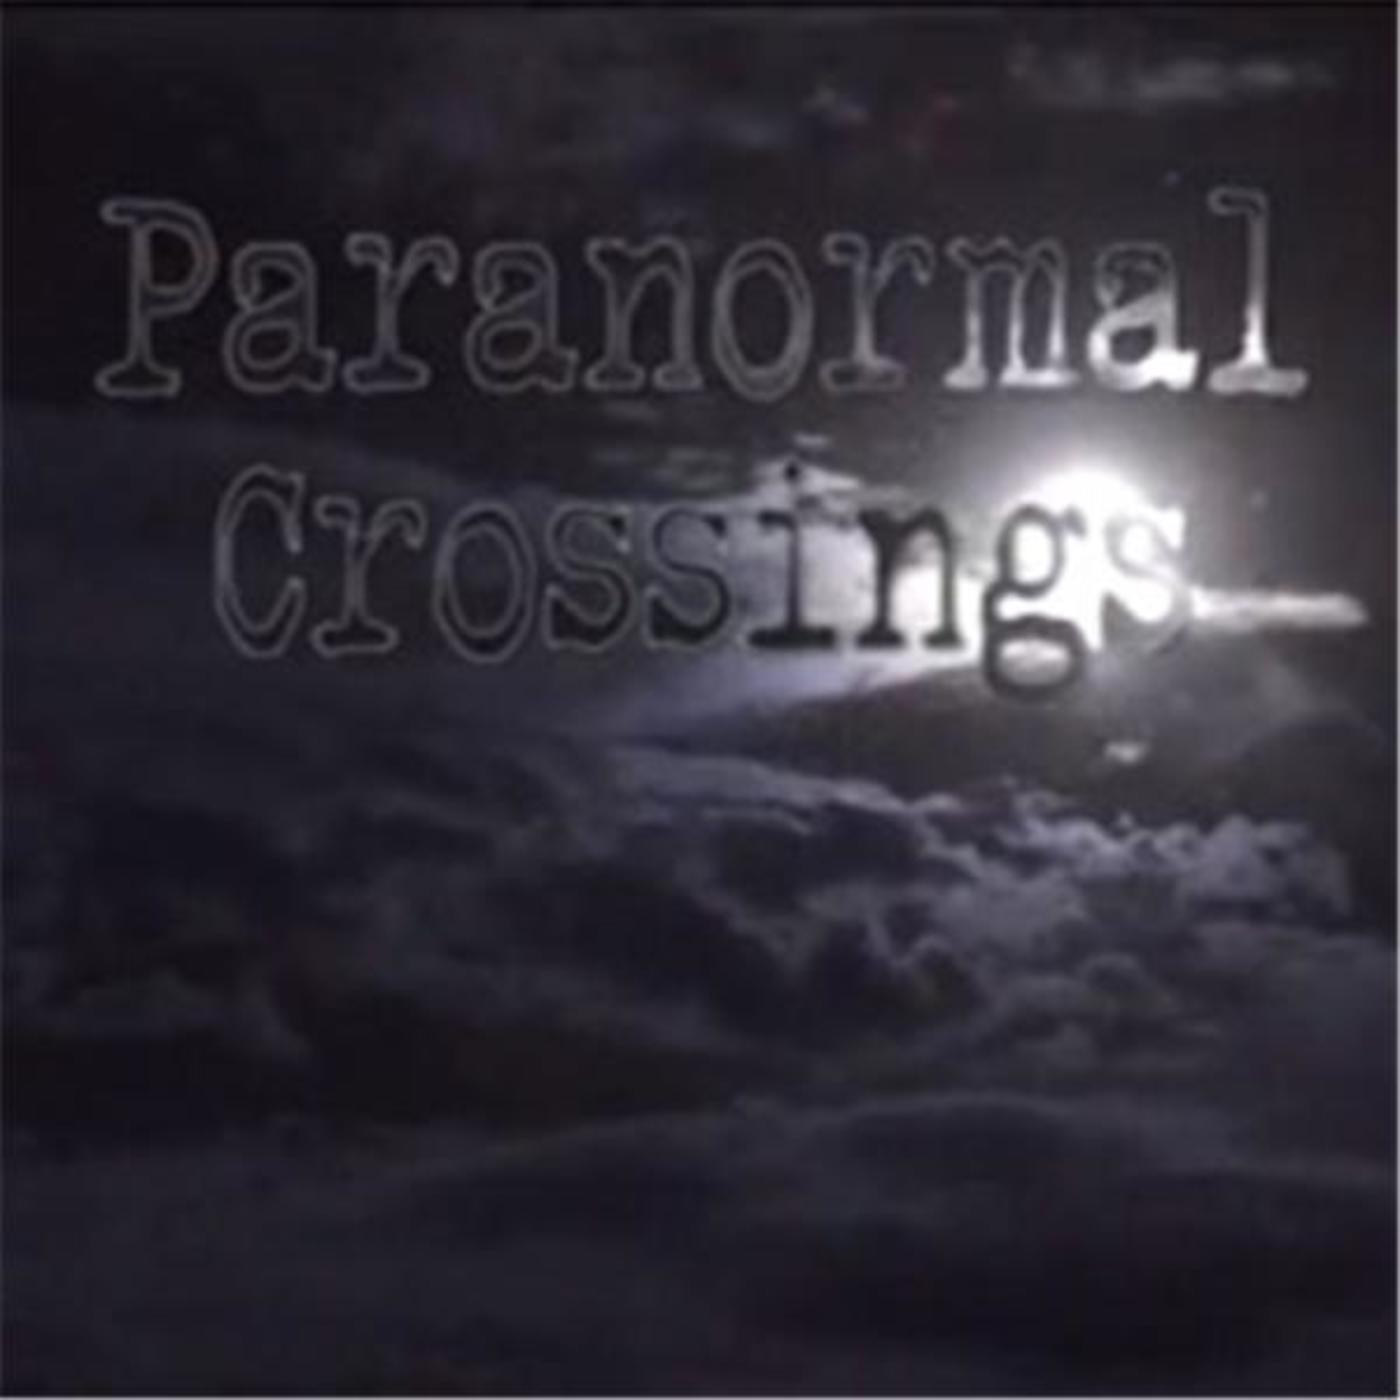 Paranormal Crossings